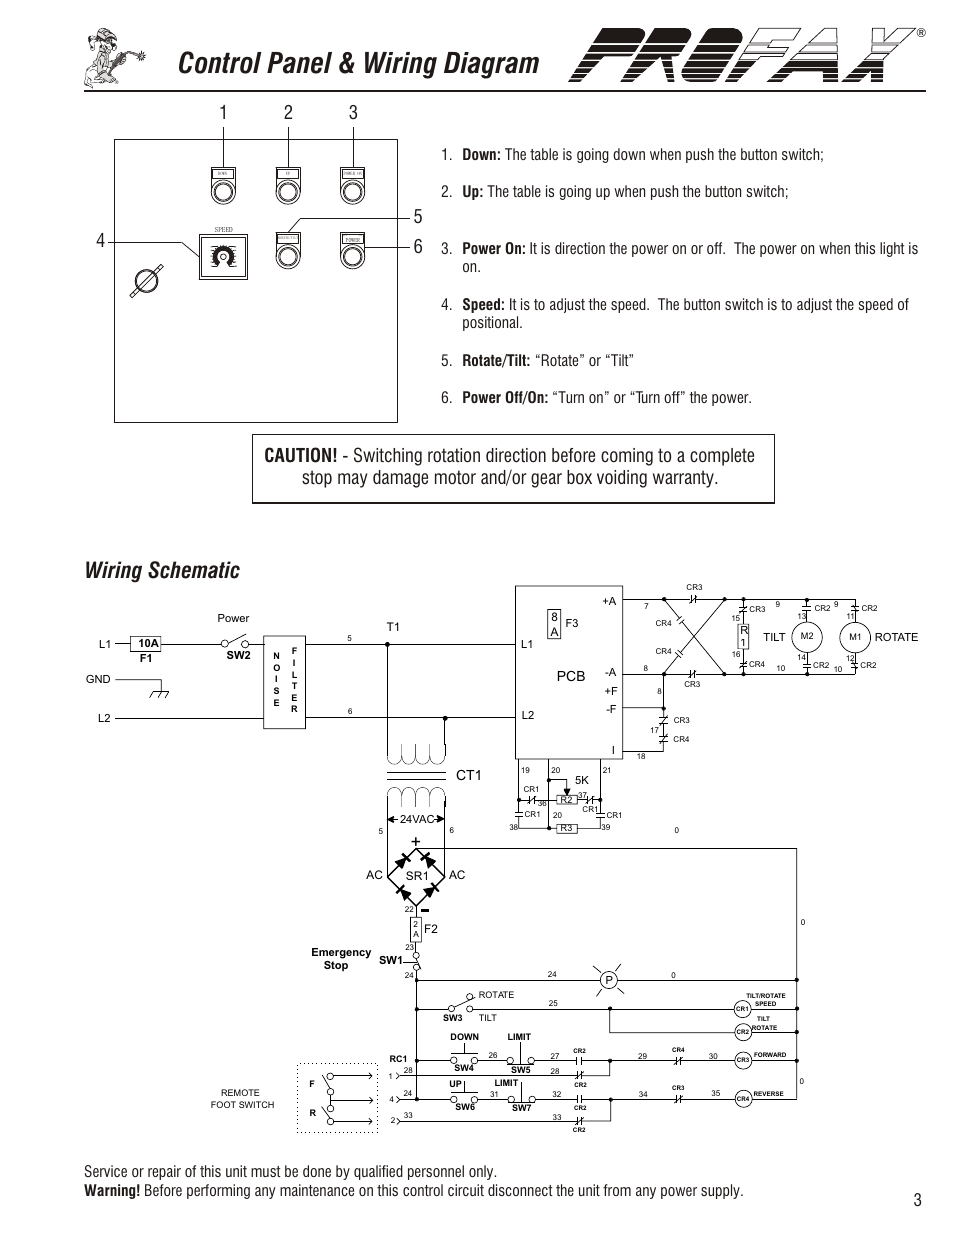 medium resolution of wp 500 general operating instructions control panel wiring diagram wiring schematic